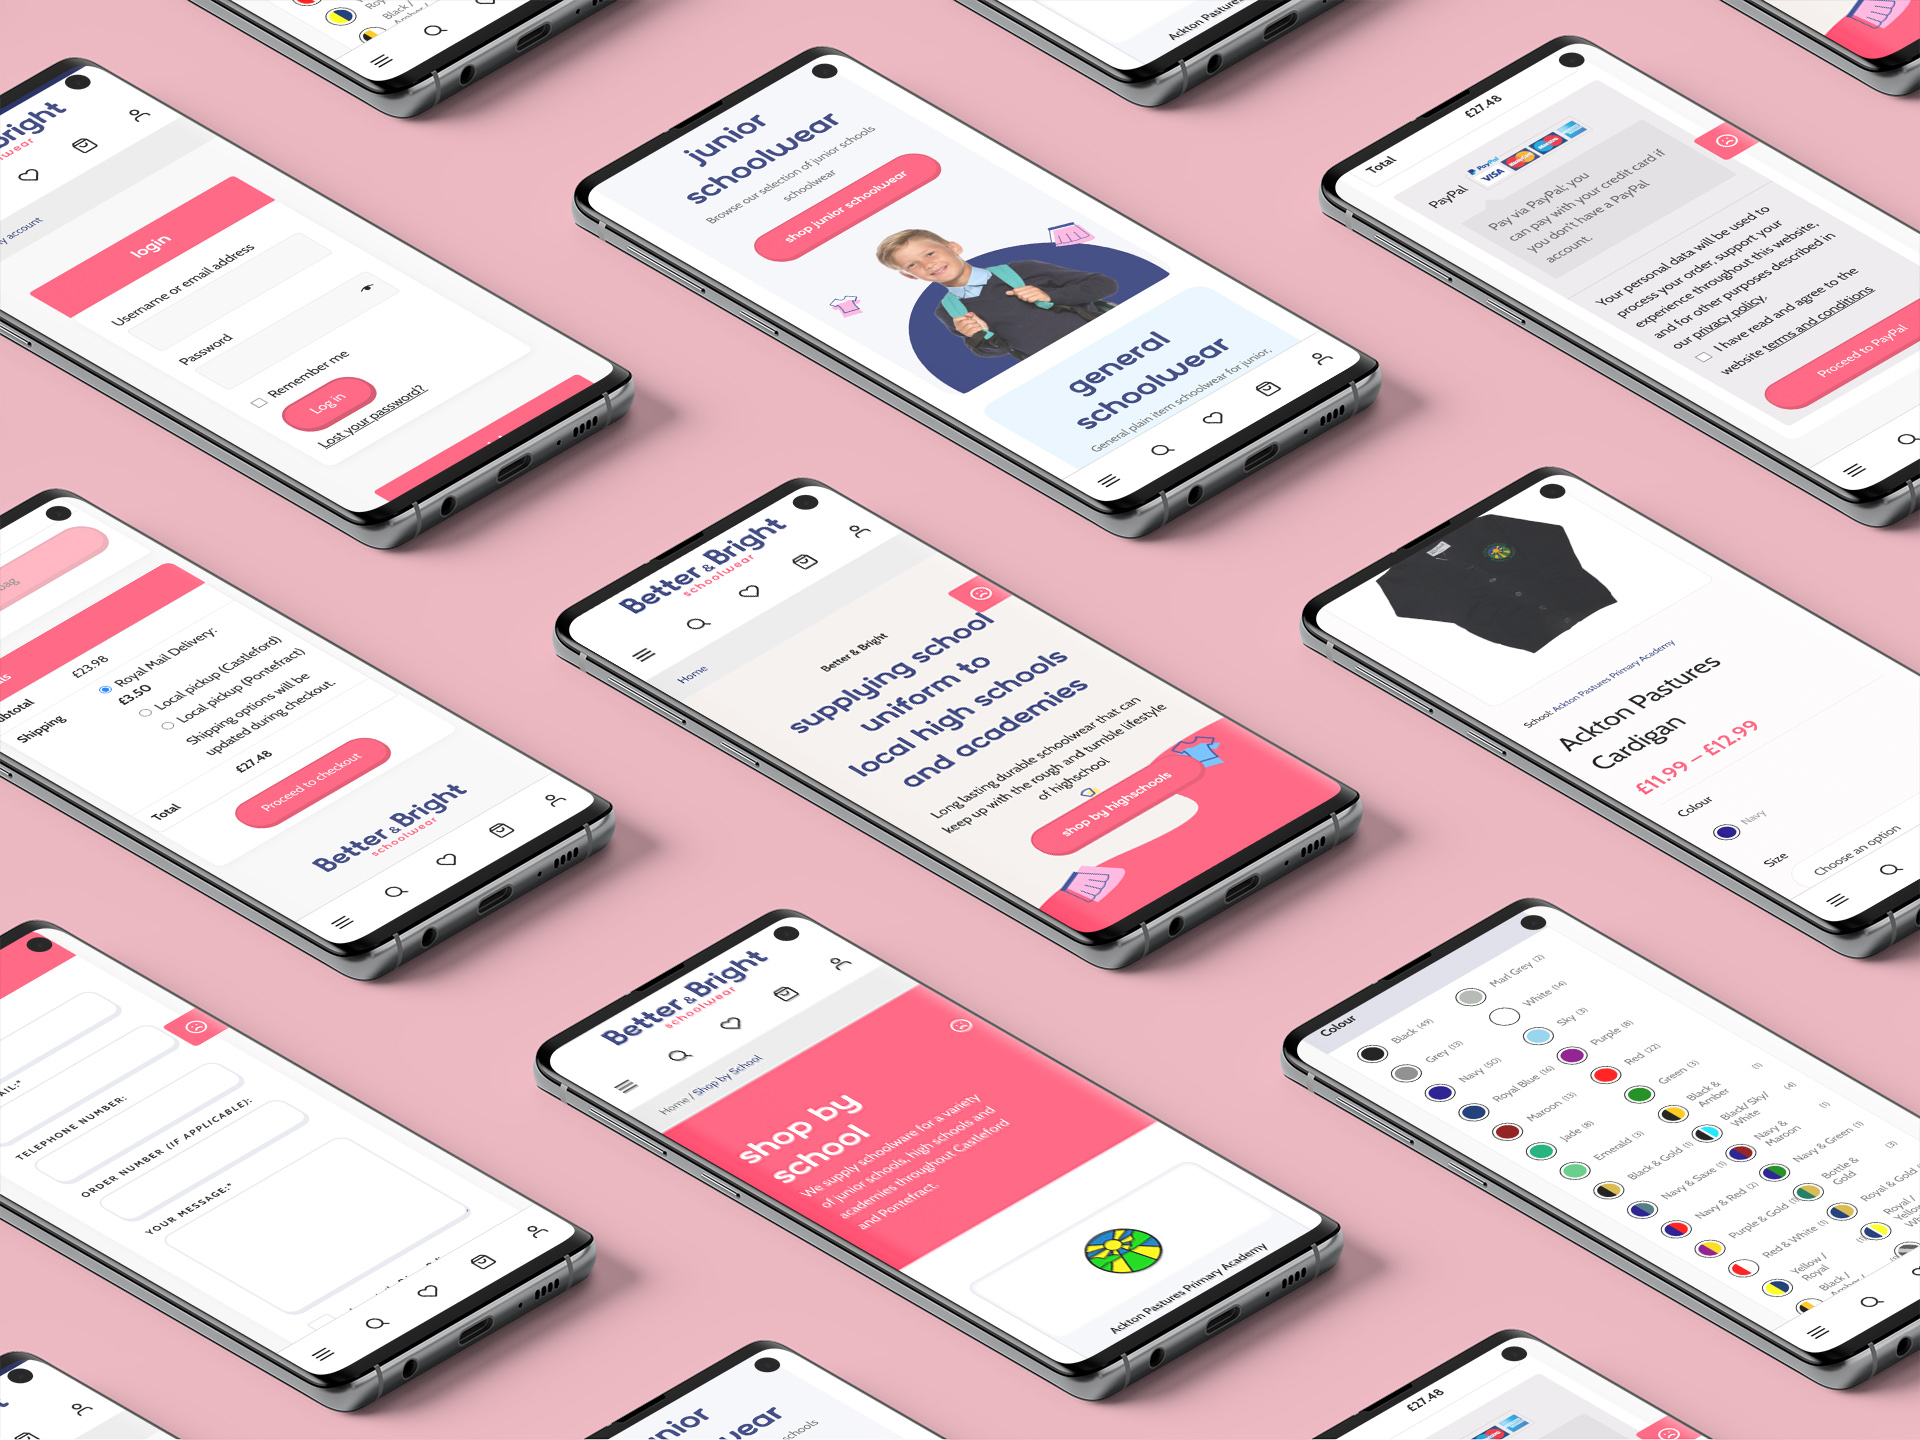 Better and Bright website displayed across various mobile screens